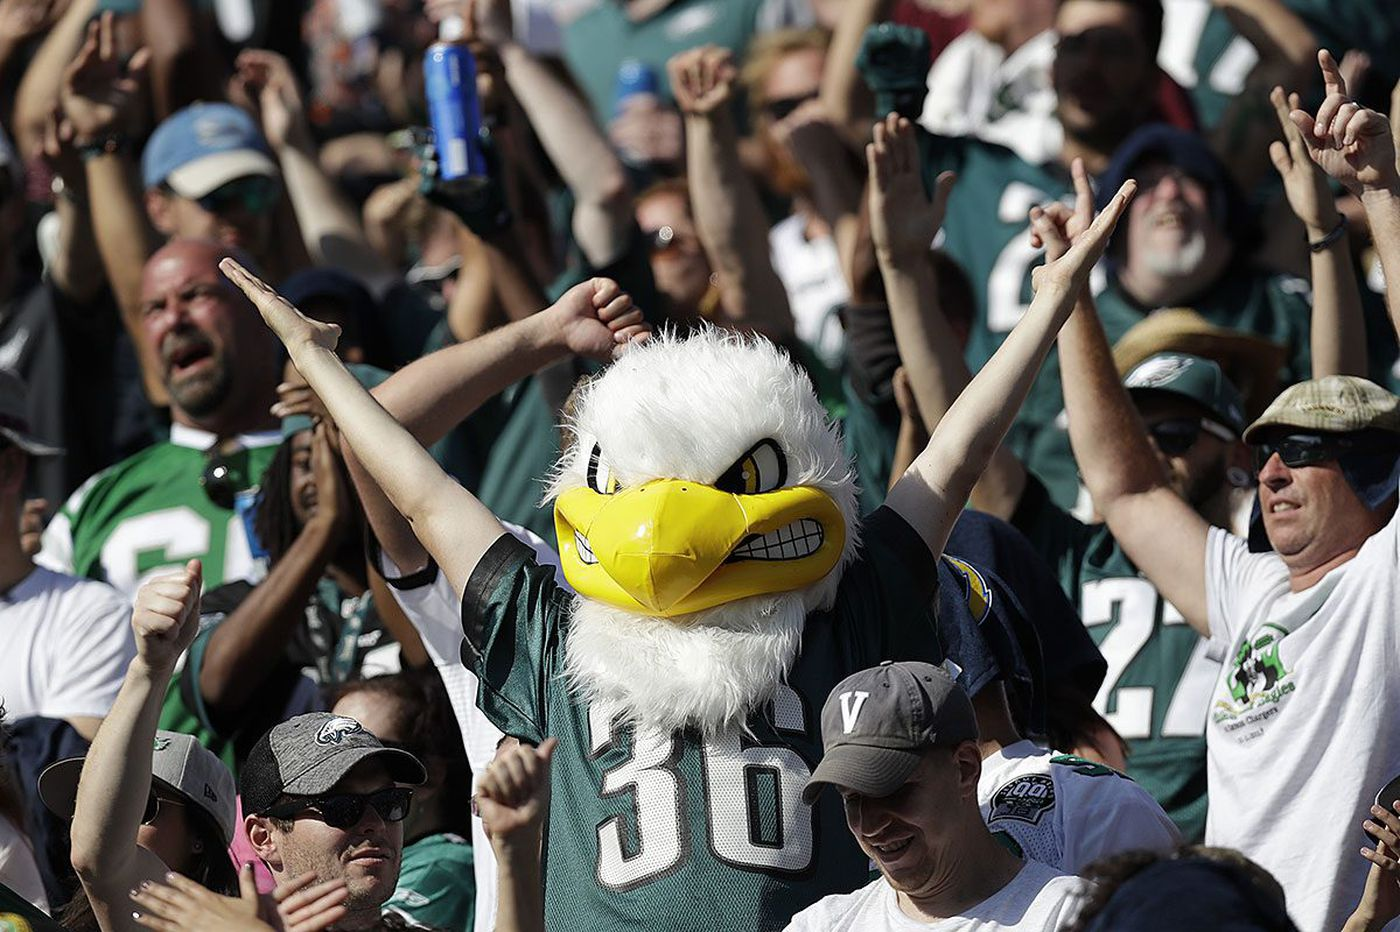 Eagles fans blast Ticketmaster over ticket sales: 'I would've rather waited in line'